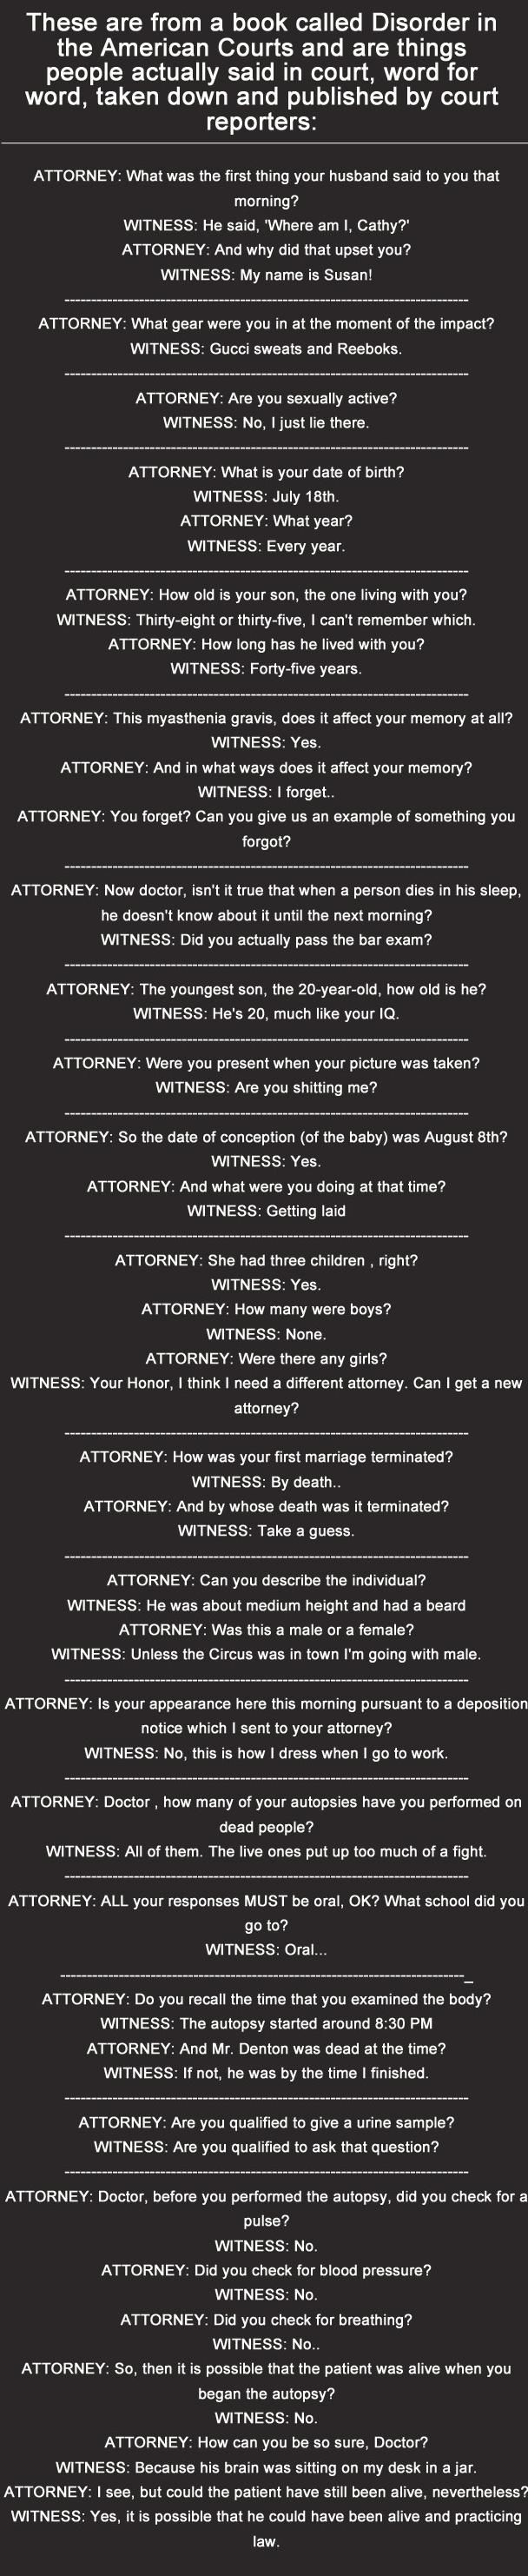 XD- that last one is so good!